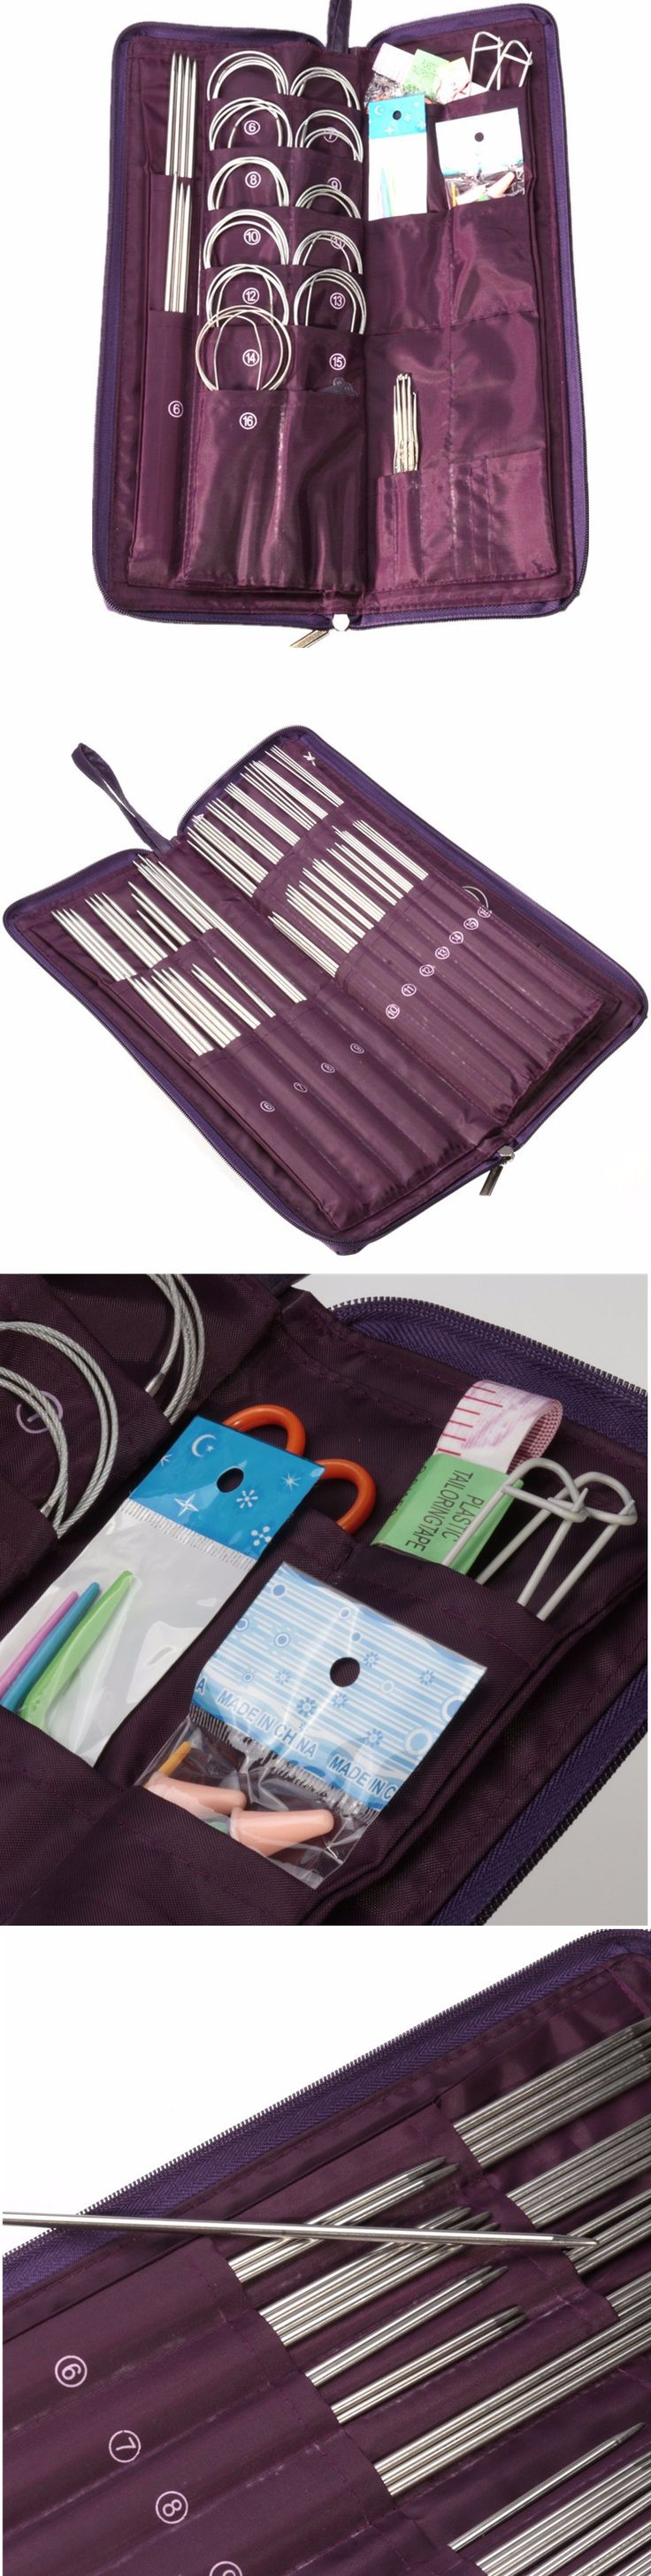 US$21.99     104pcs Steel Knitting Needles Circular Needles Crochet Hook Kit Set Sweater Hat Weave Stitches